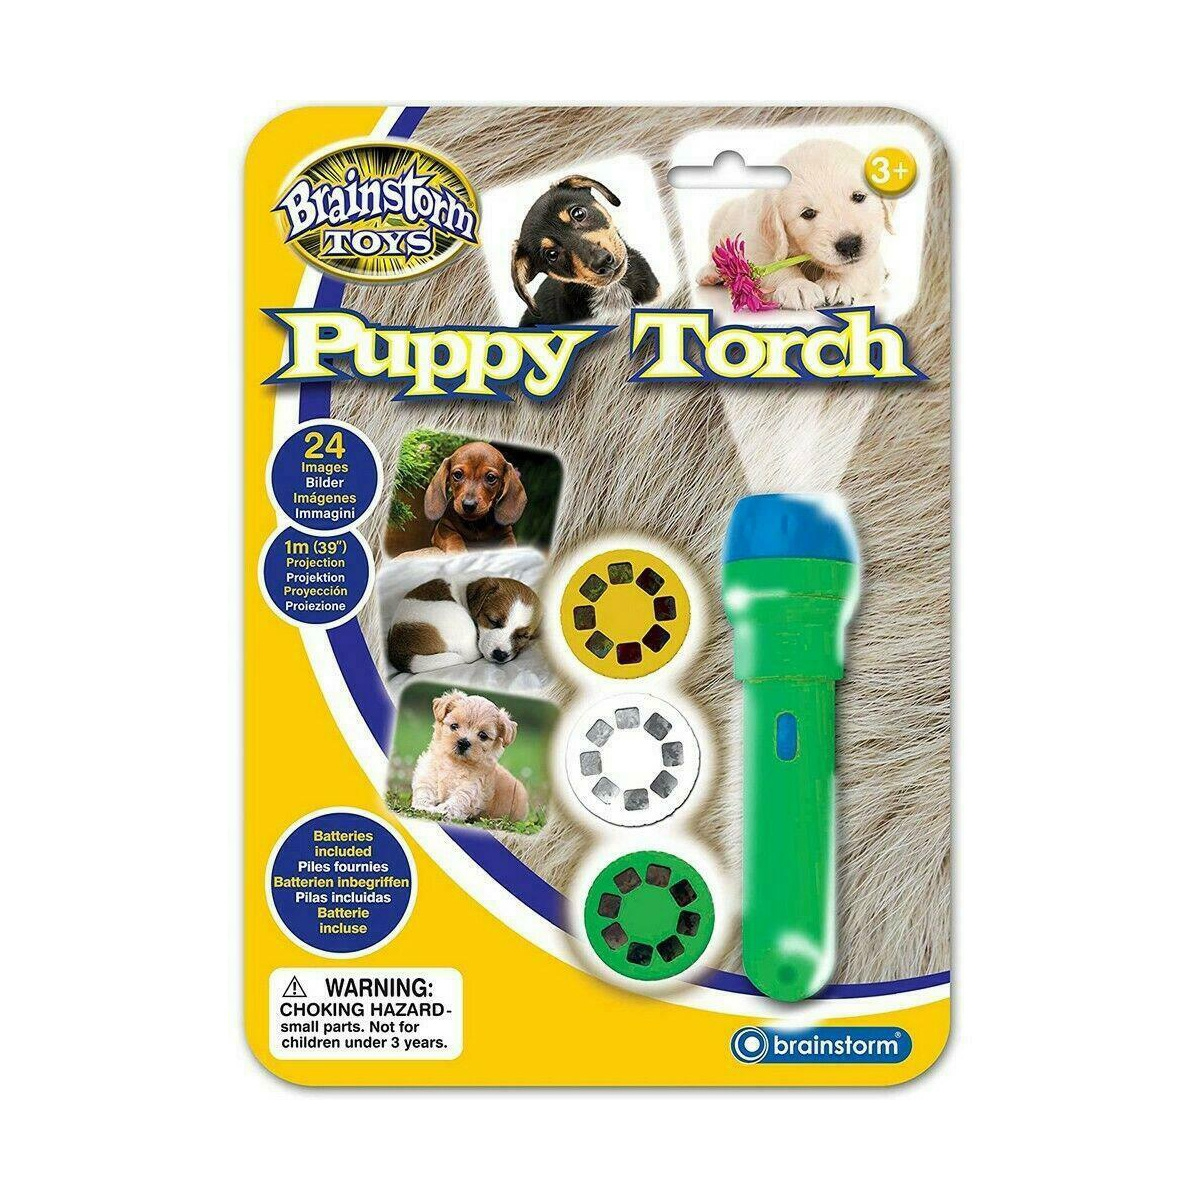 Puppy Torch And Projector